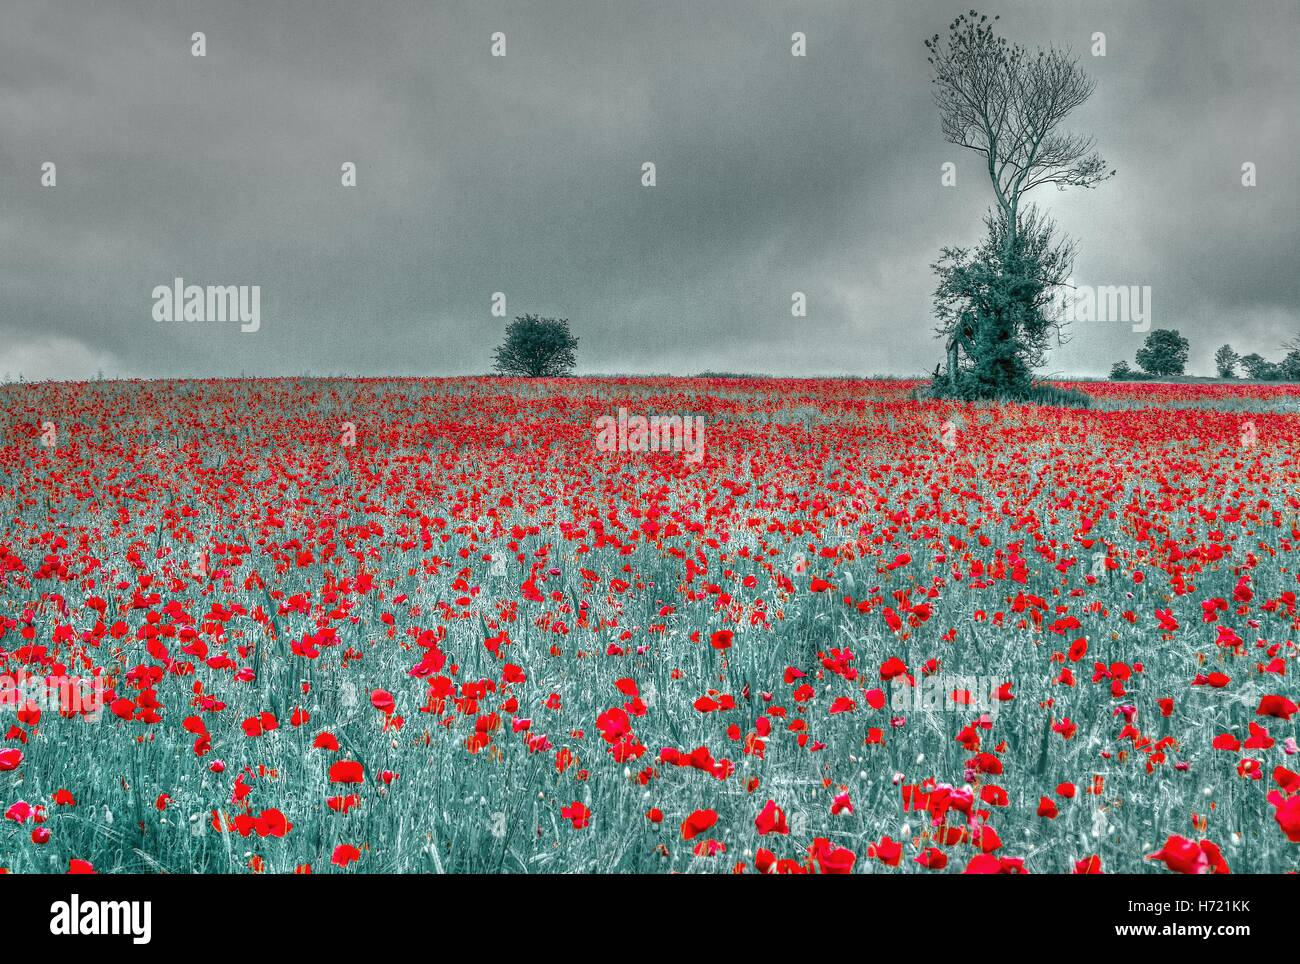 Poppy field near Llangollen in North Wales standing out in a sea of red - Stock Image